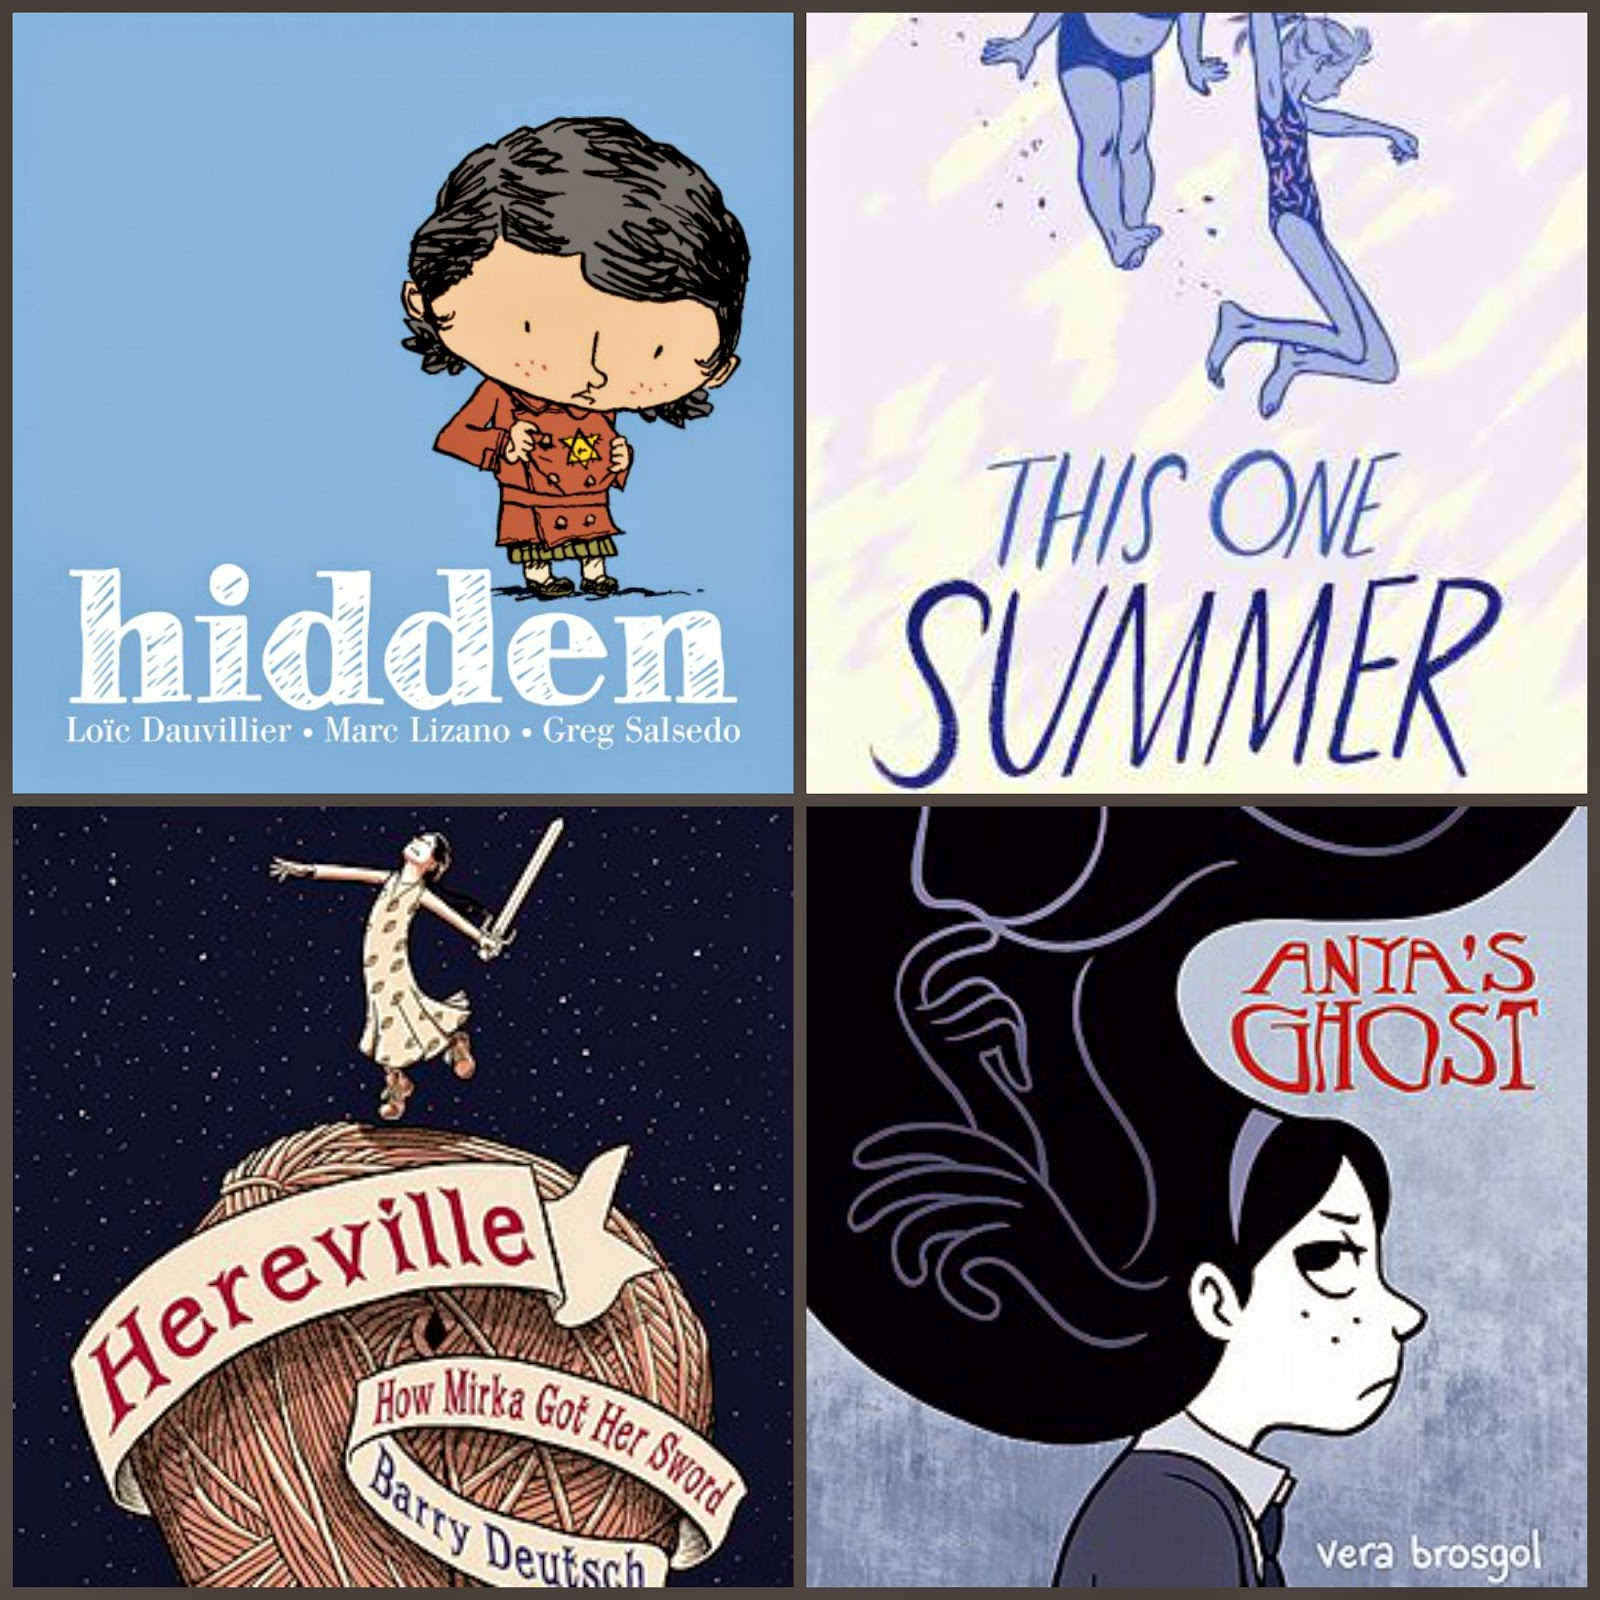 comics: hidden, this one summer, hereville, anya's ghost